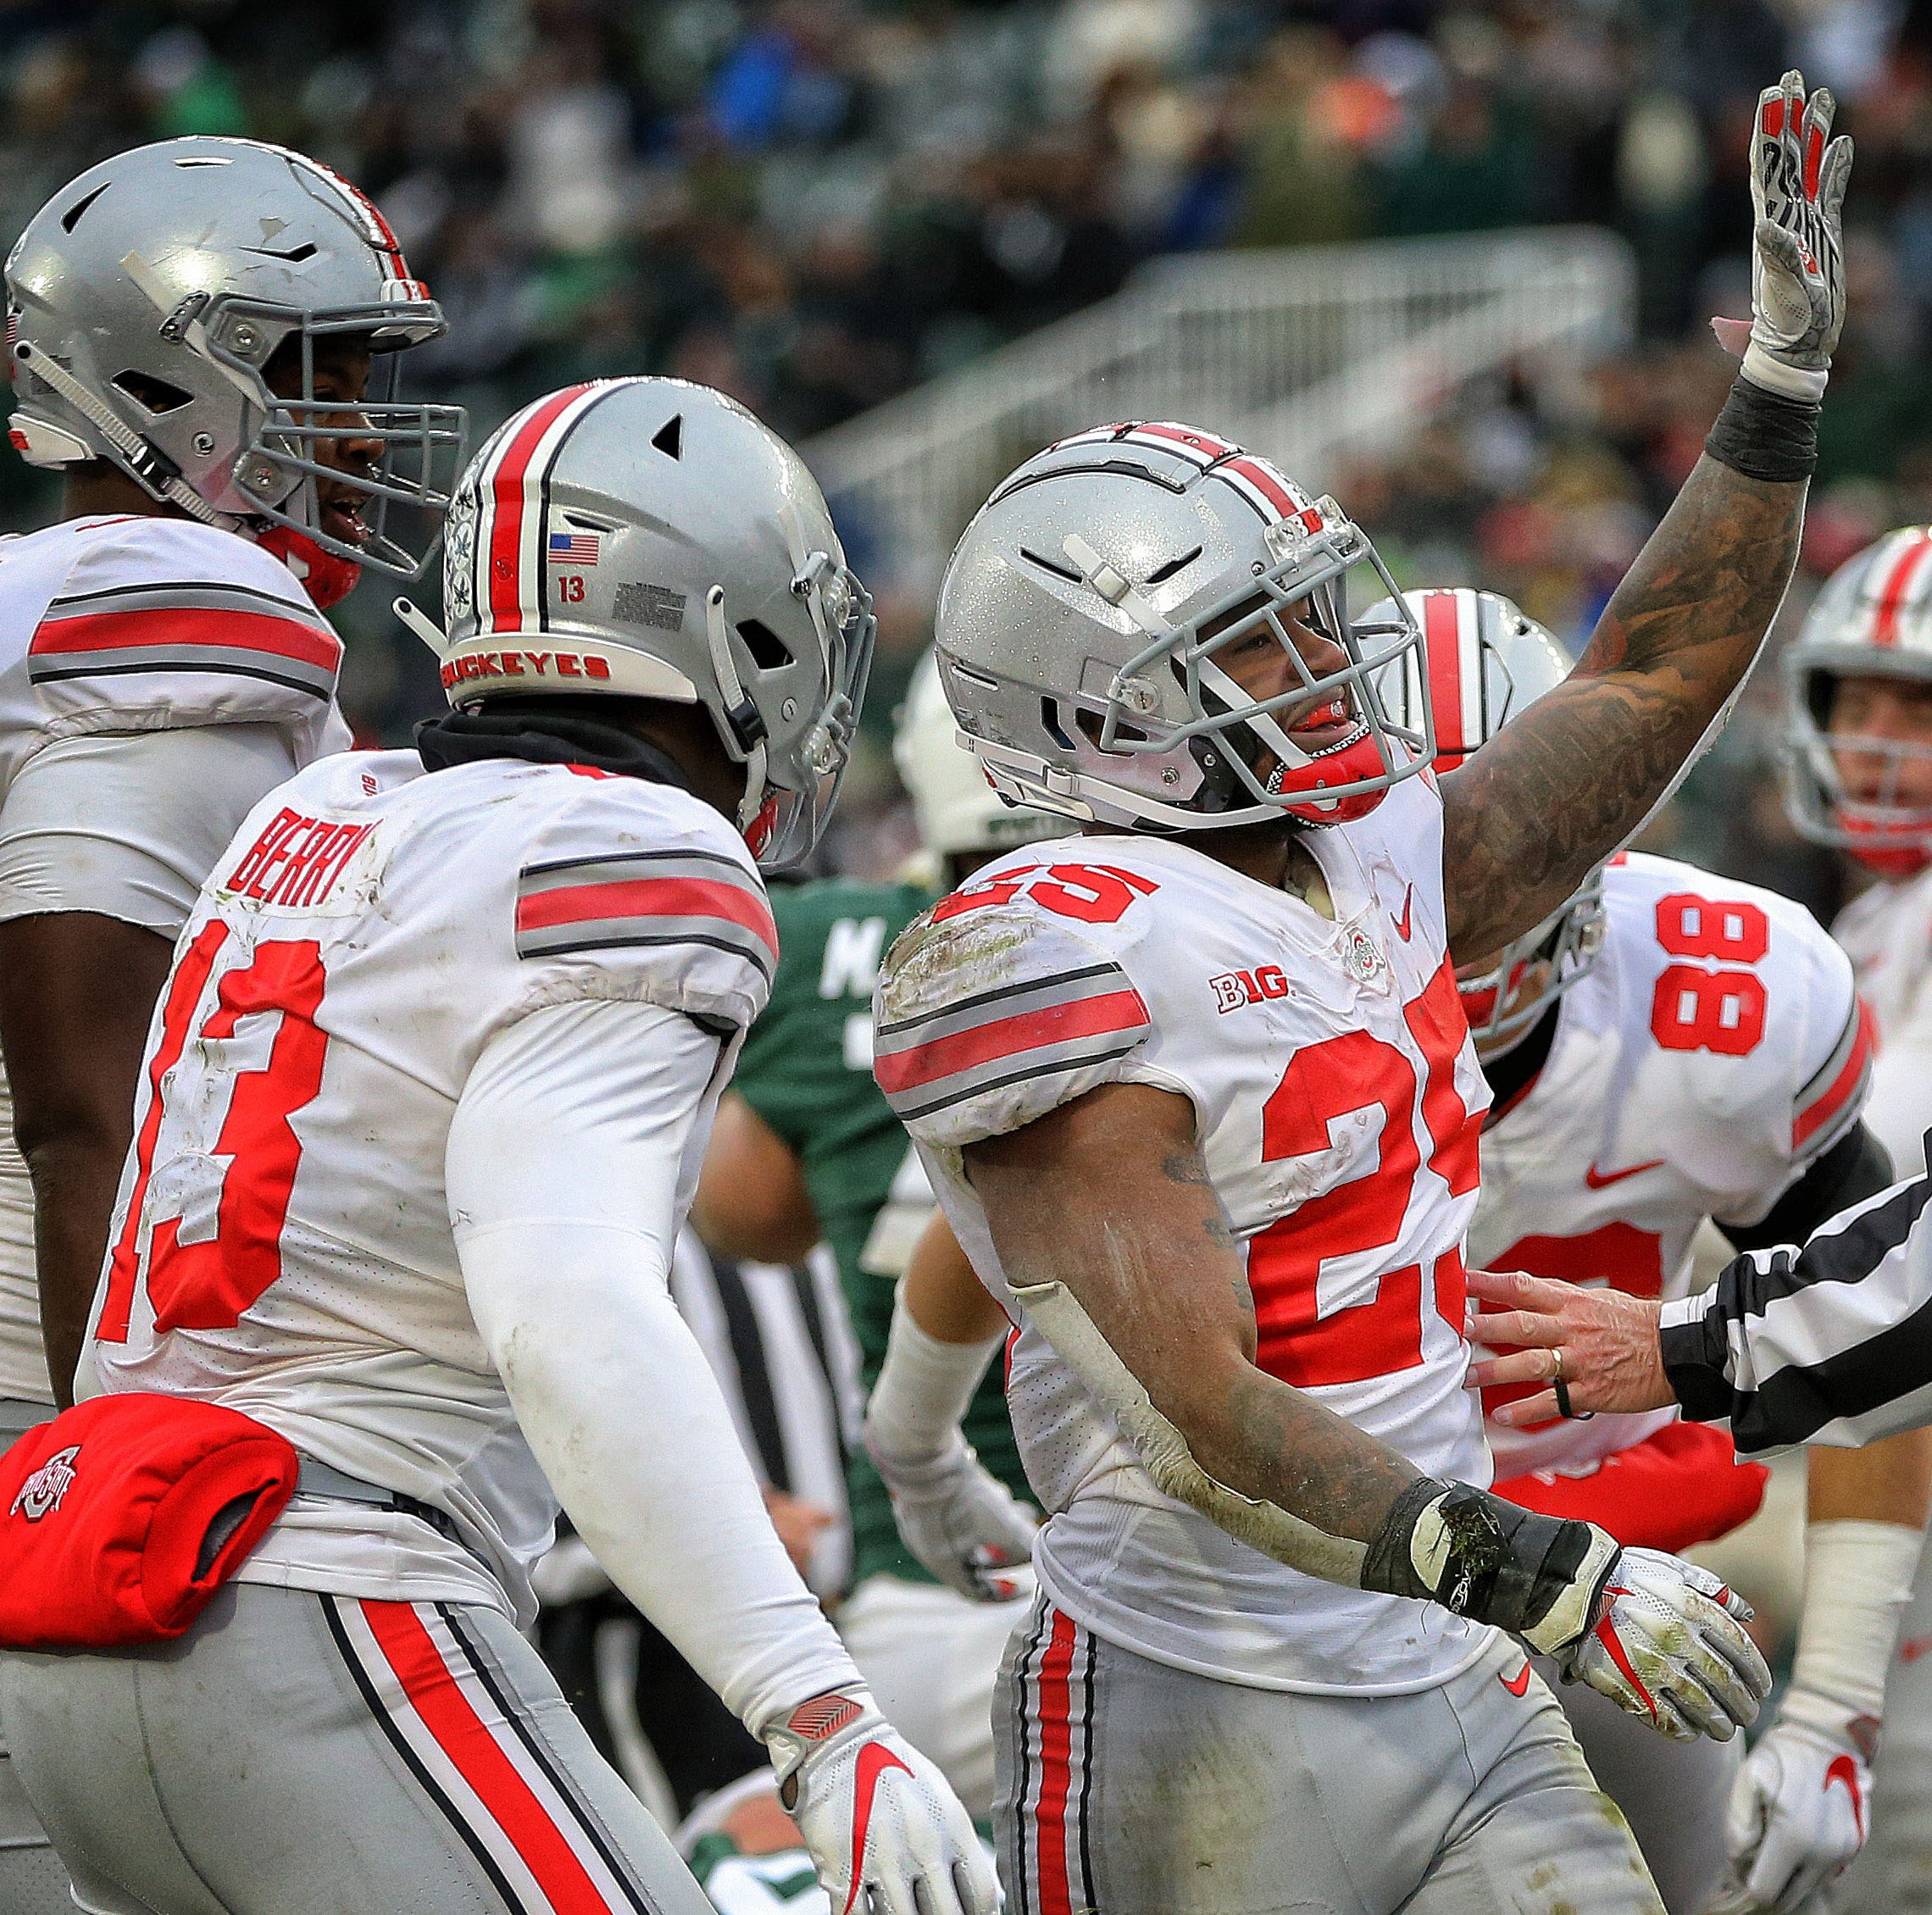 Bowled over: Buckeyes opt to play for roses, rather than sit